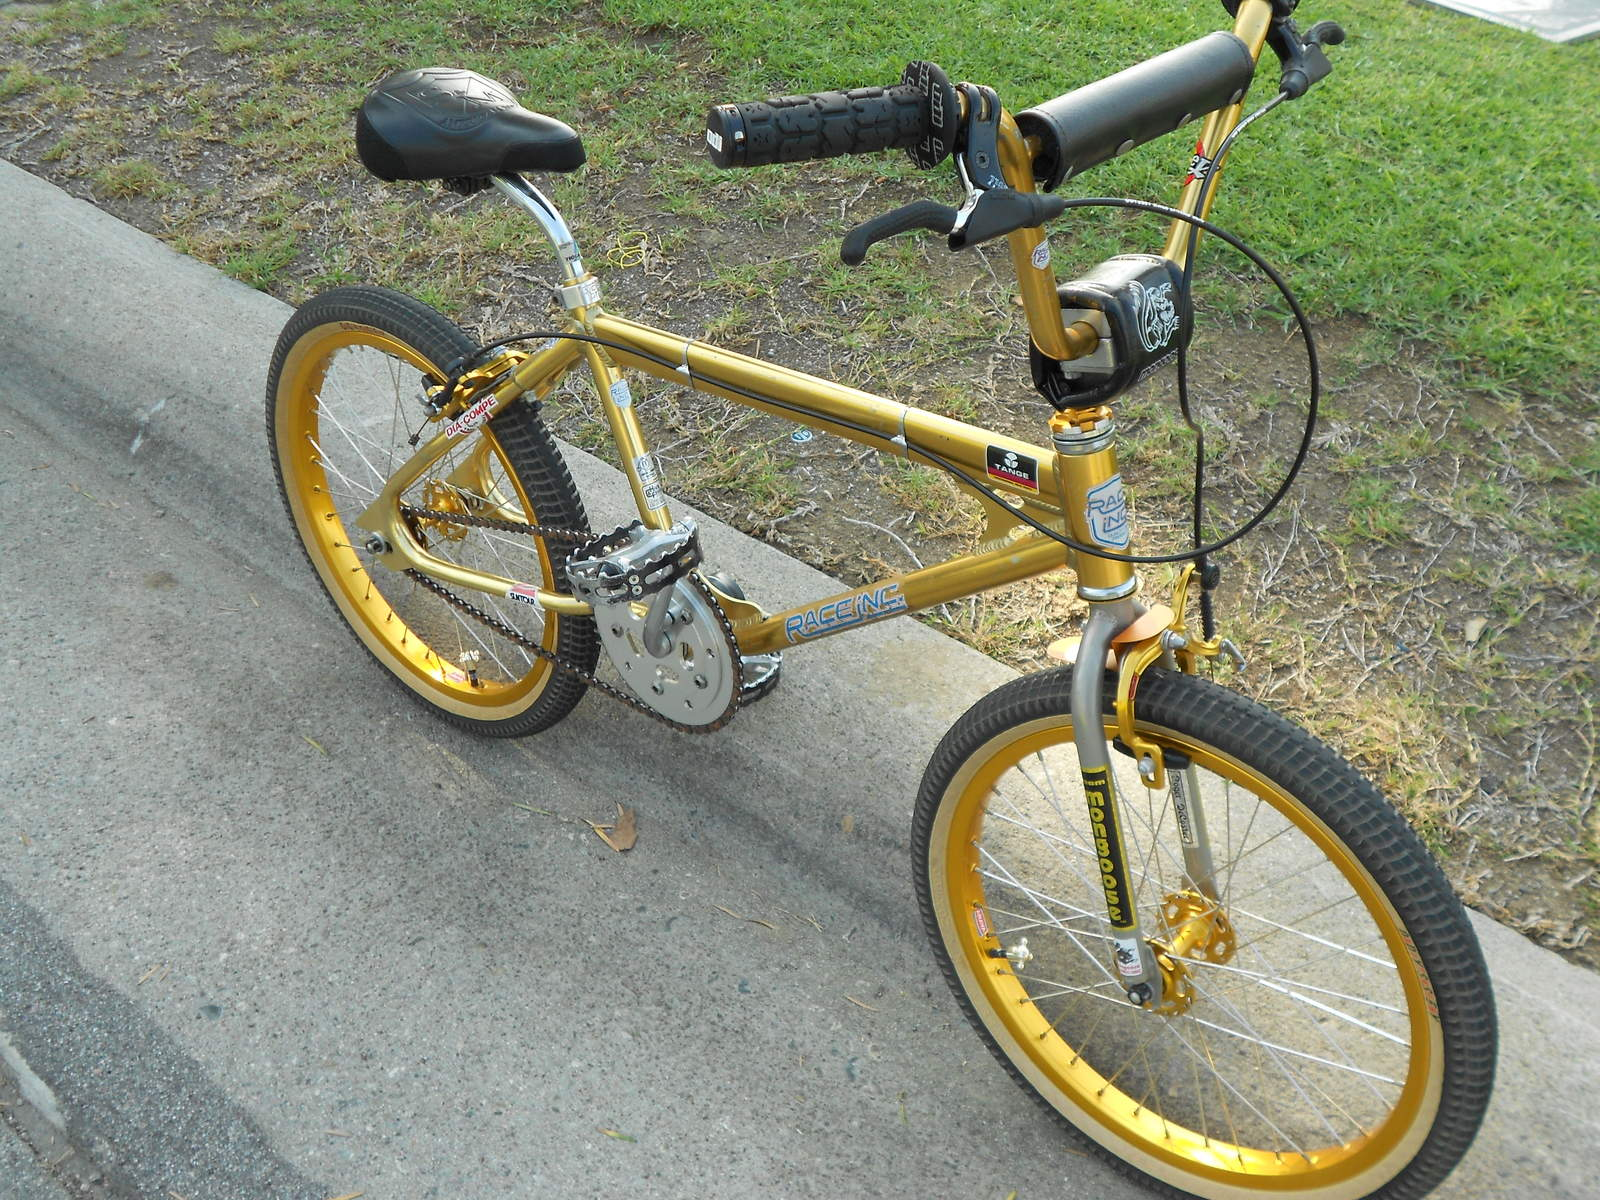 http://uploads.bmxmuseum.com/user-images/42228/ri-9-25-2018-0065c84748621.jpg